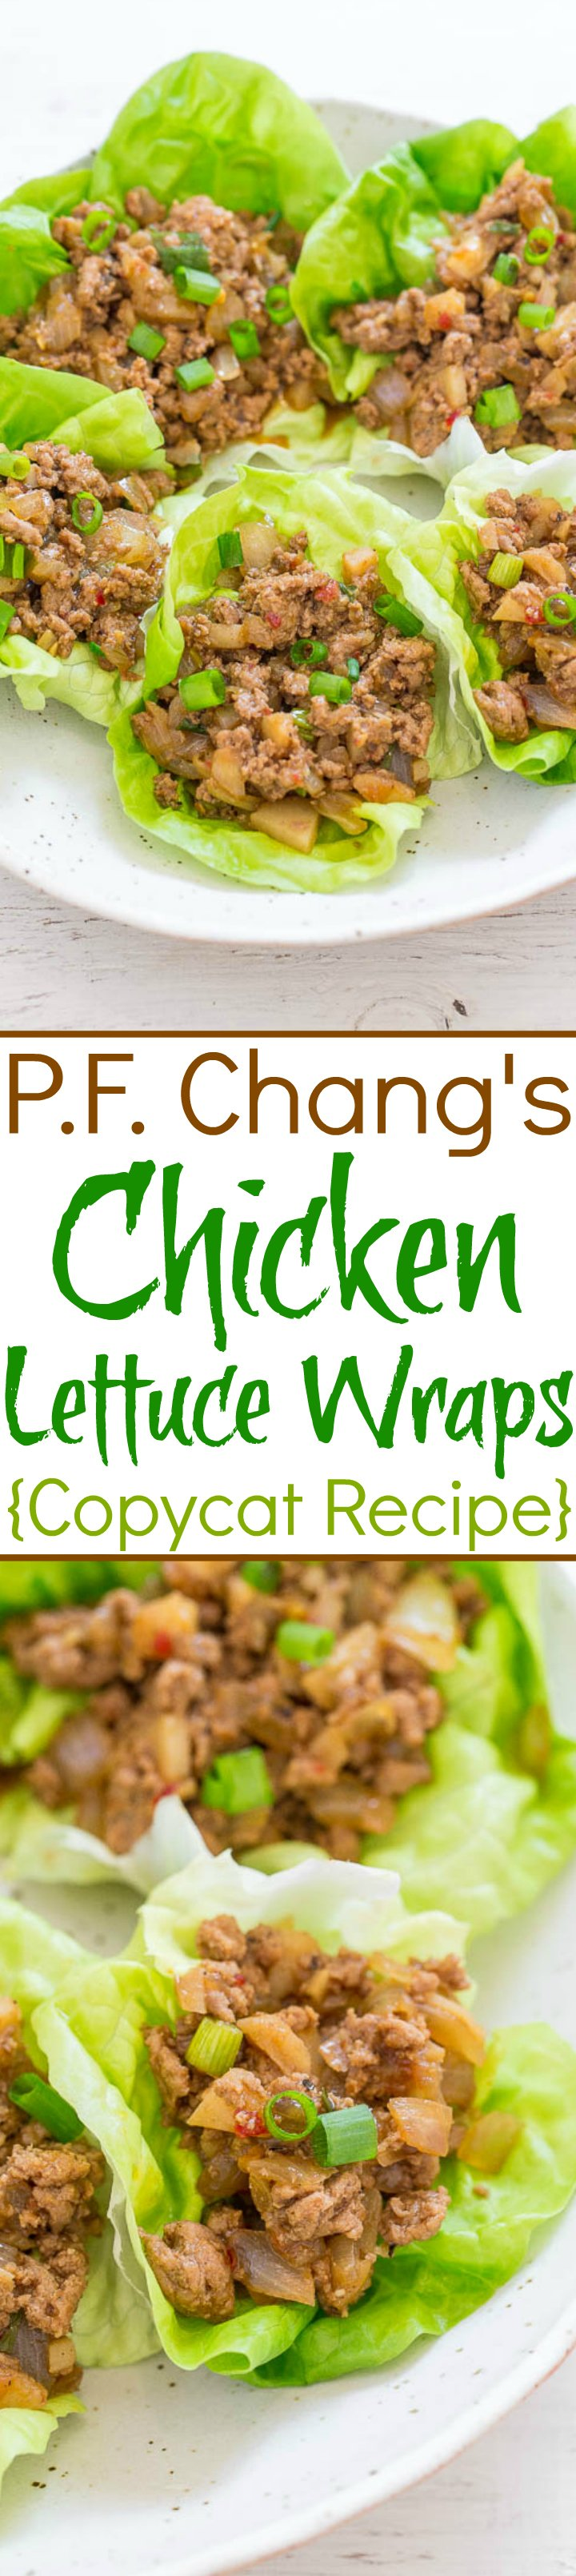 Two picture of PF Chang's chicken lettuce wrap with graphic title